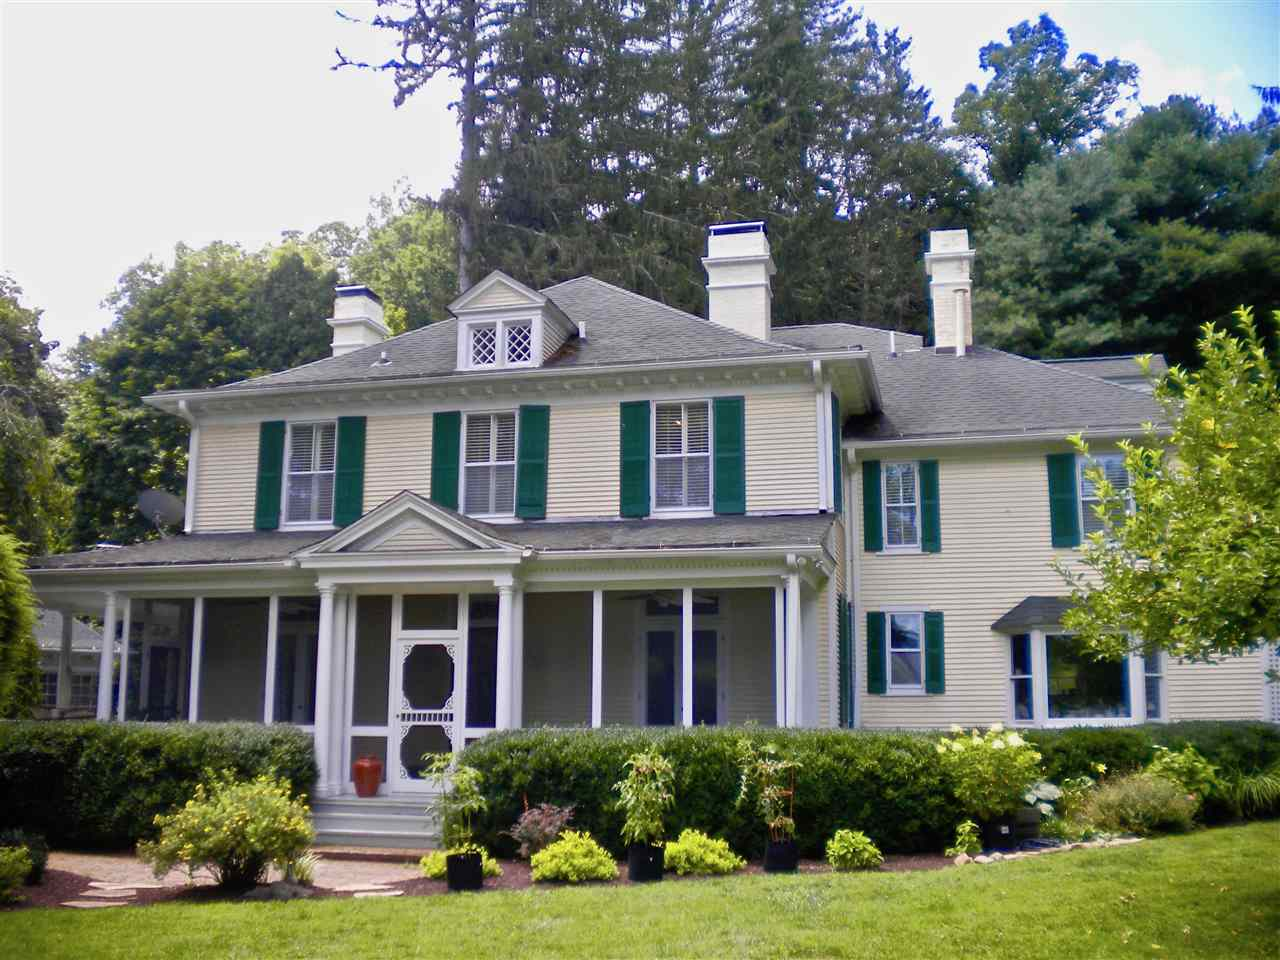 240 FRENCHS HILL DR, HOT SPRINGS, VA 24445